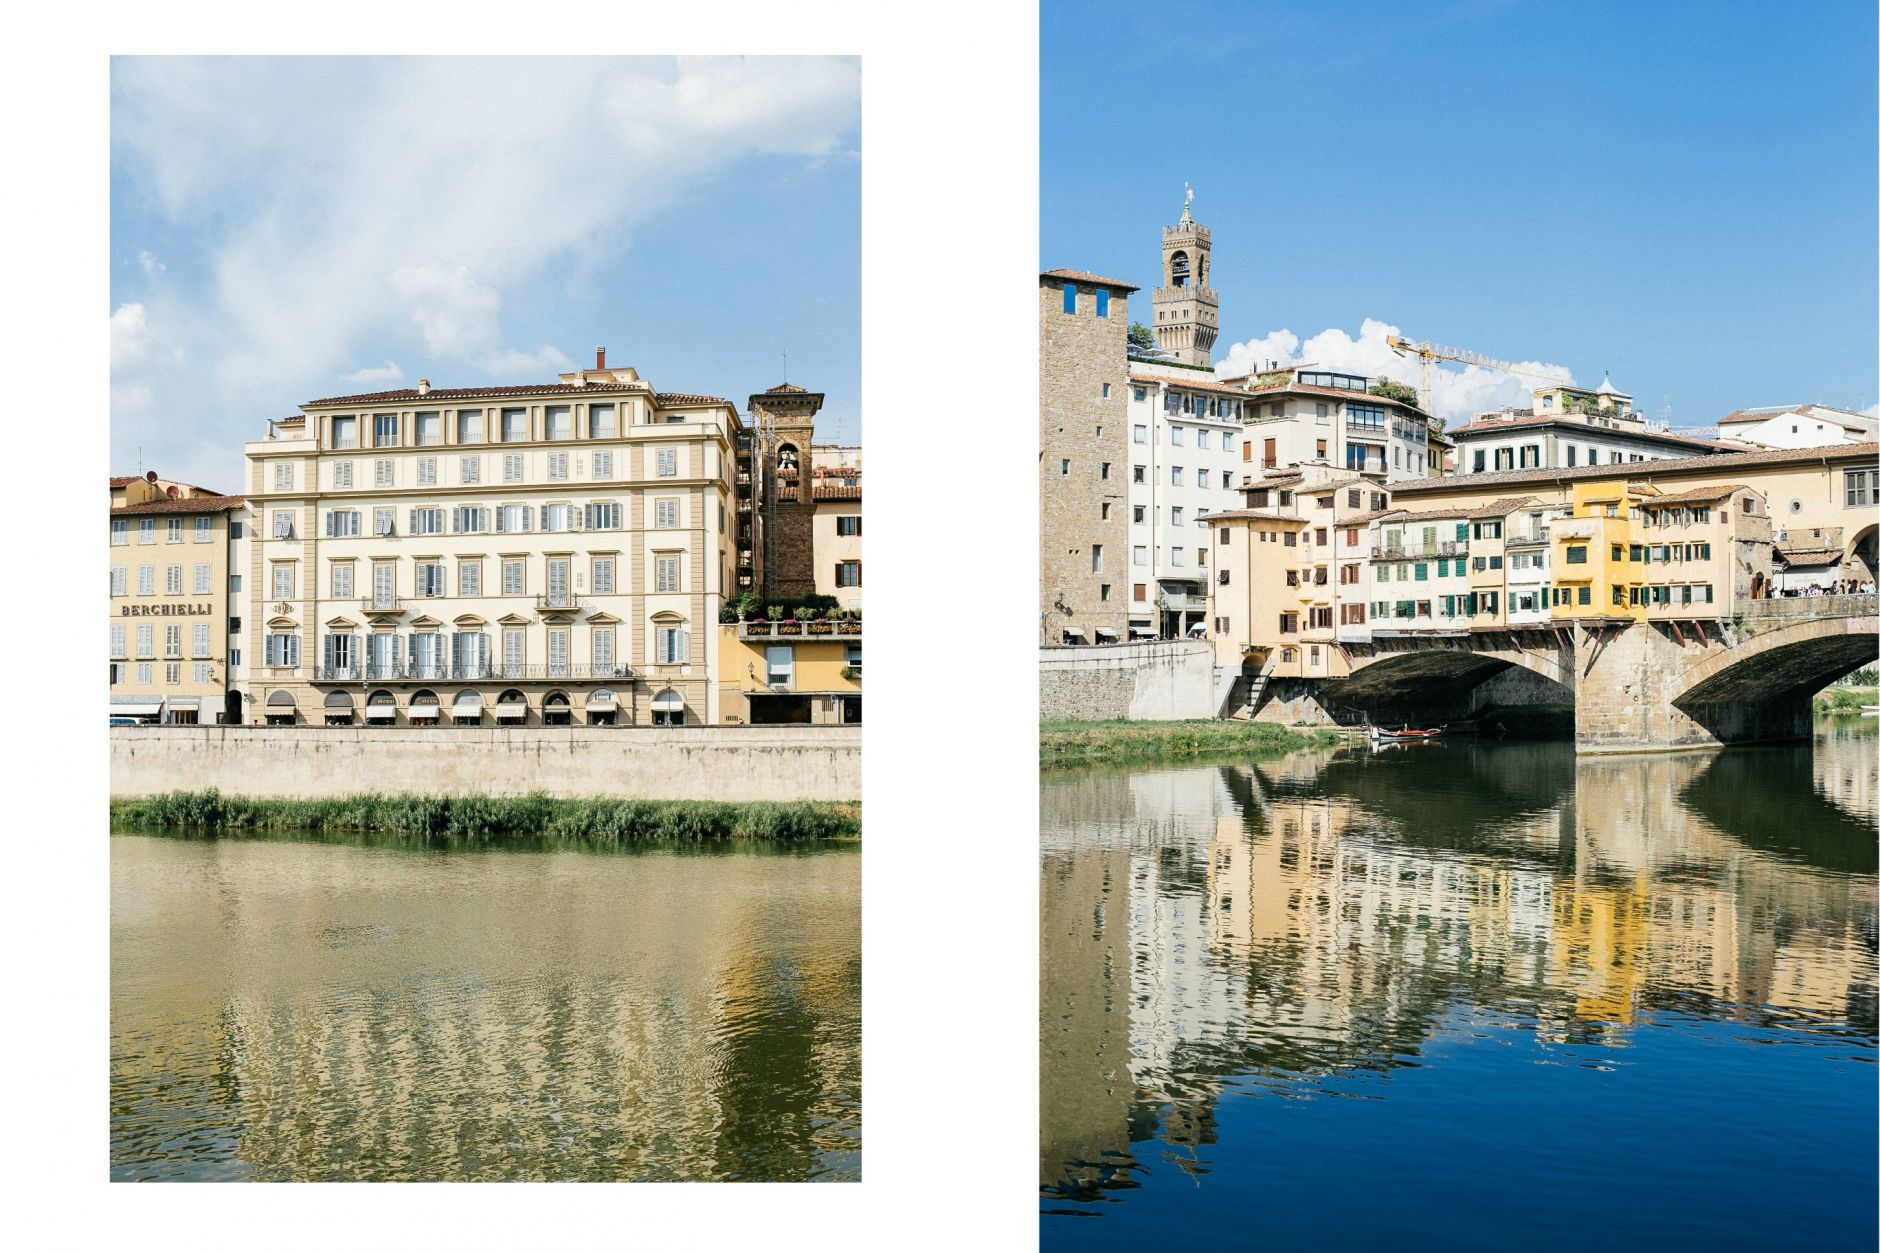 Florence-City-Italy-Travel-Guide-Hotels-Restaurants-Bars-Disi-Couture-110